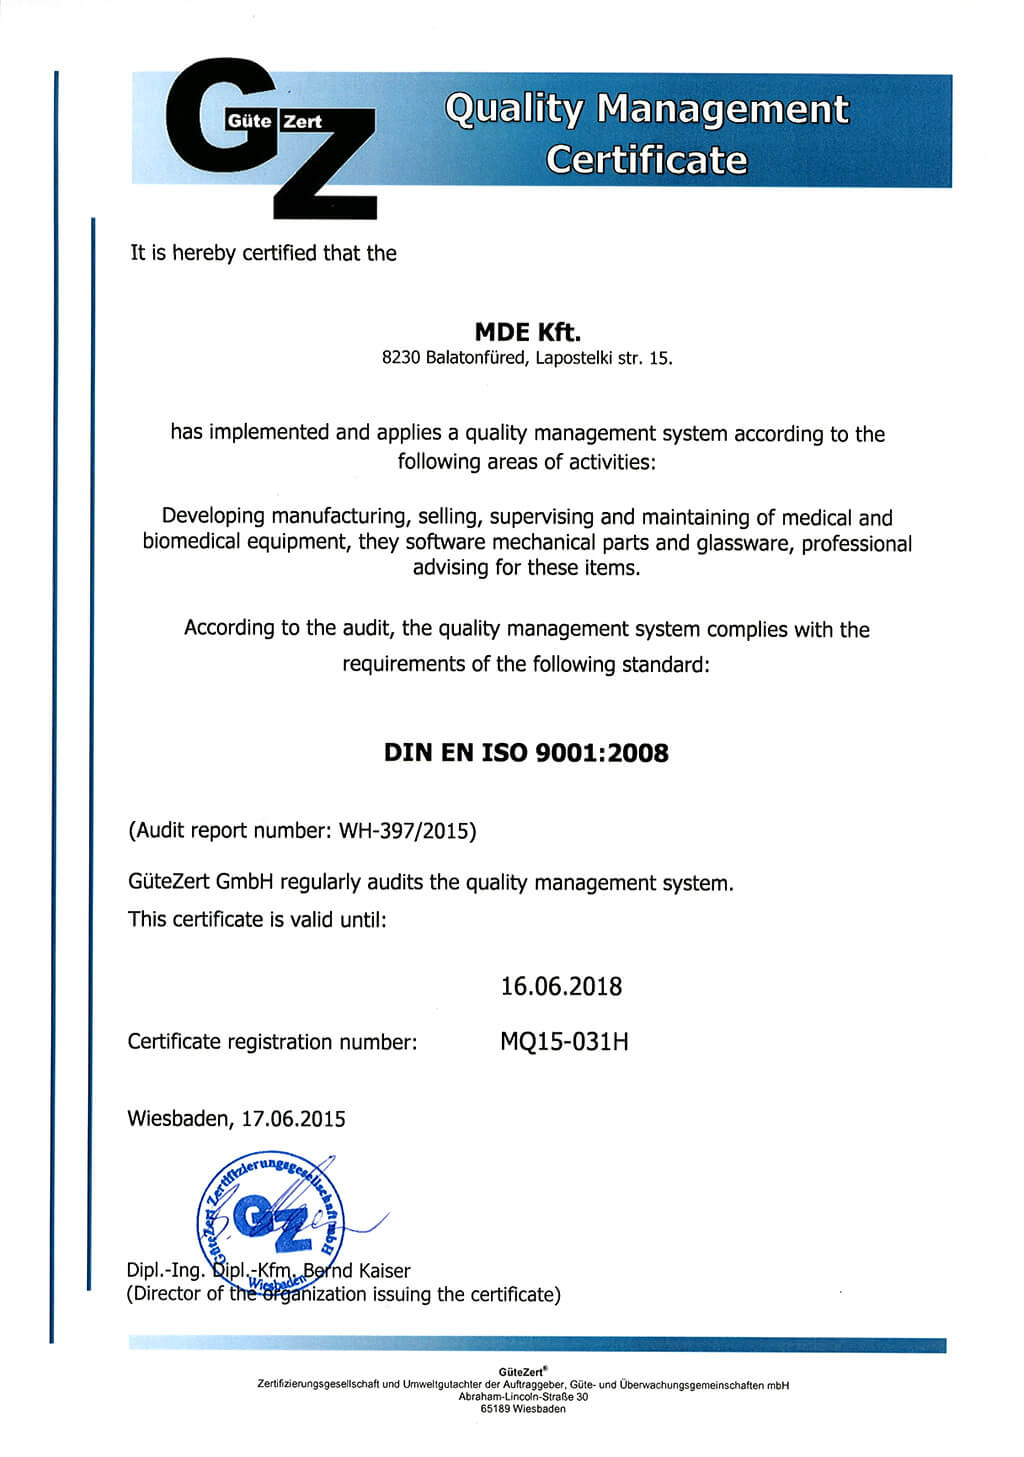 Quality management Certificate 16.06.2018